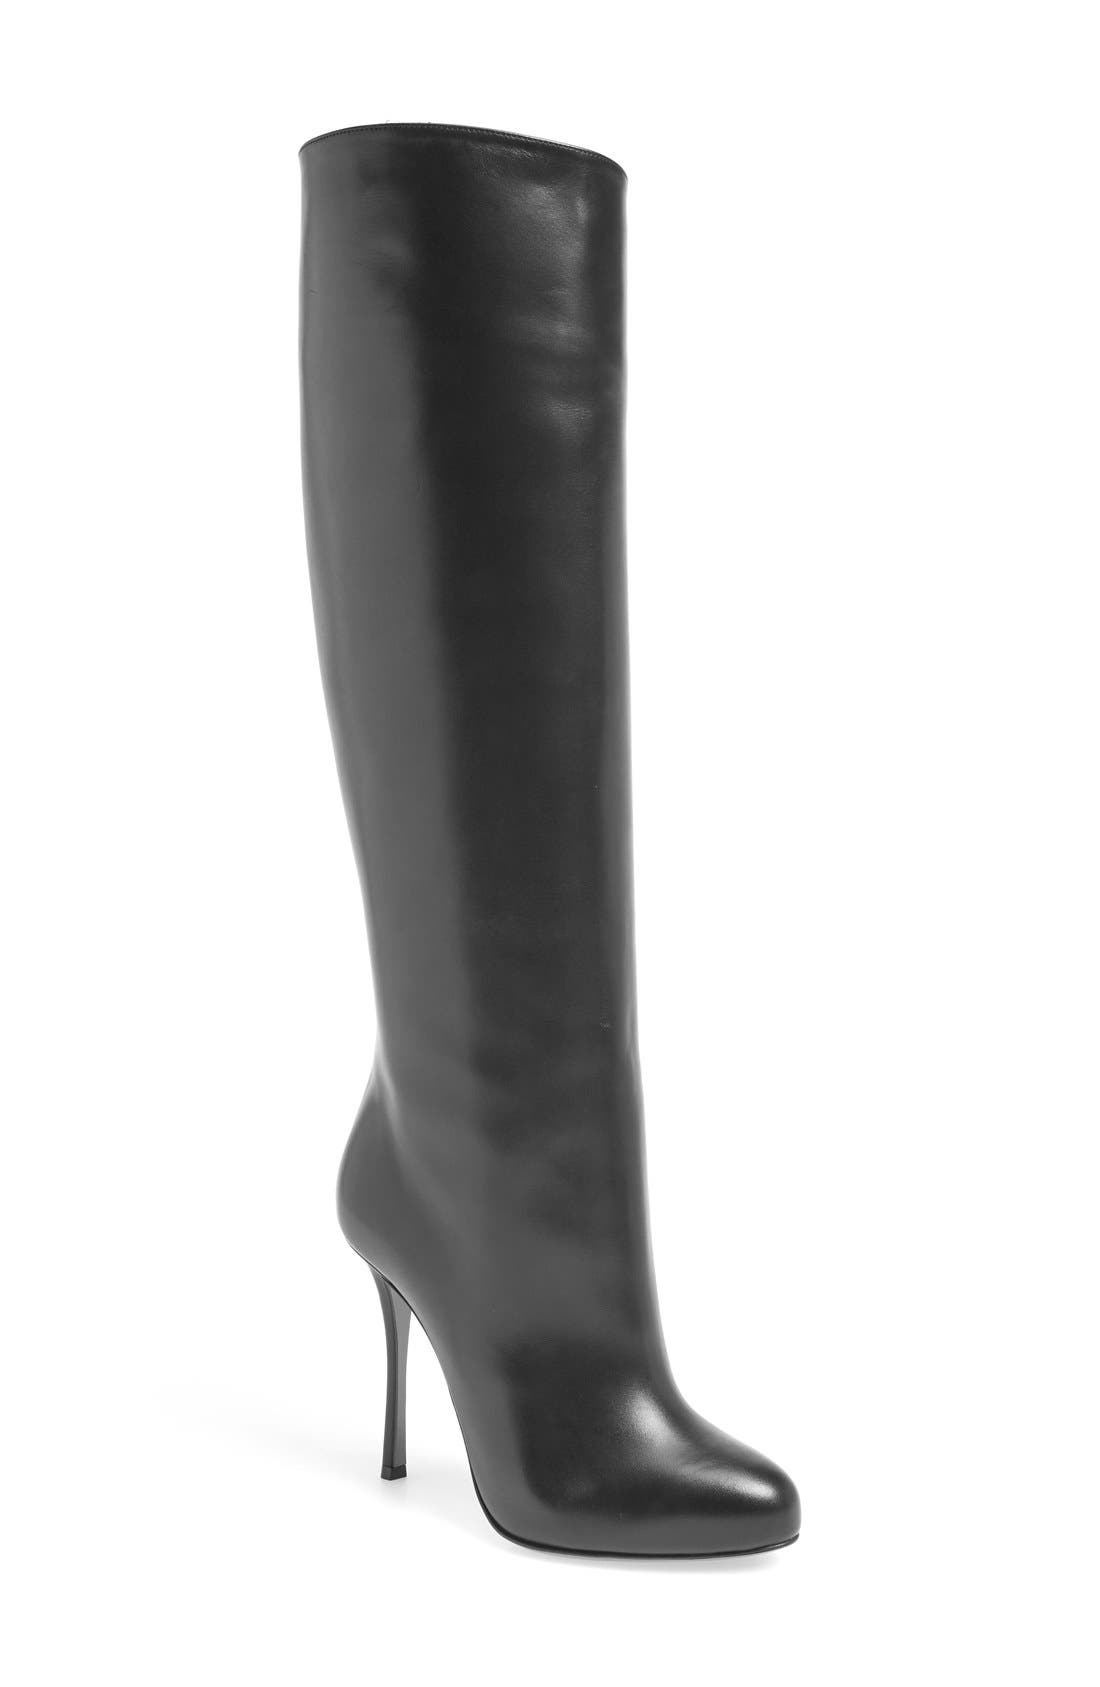 christian louboutin knee high boots black